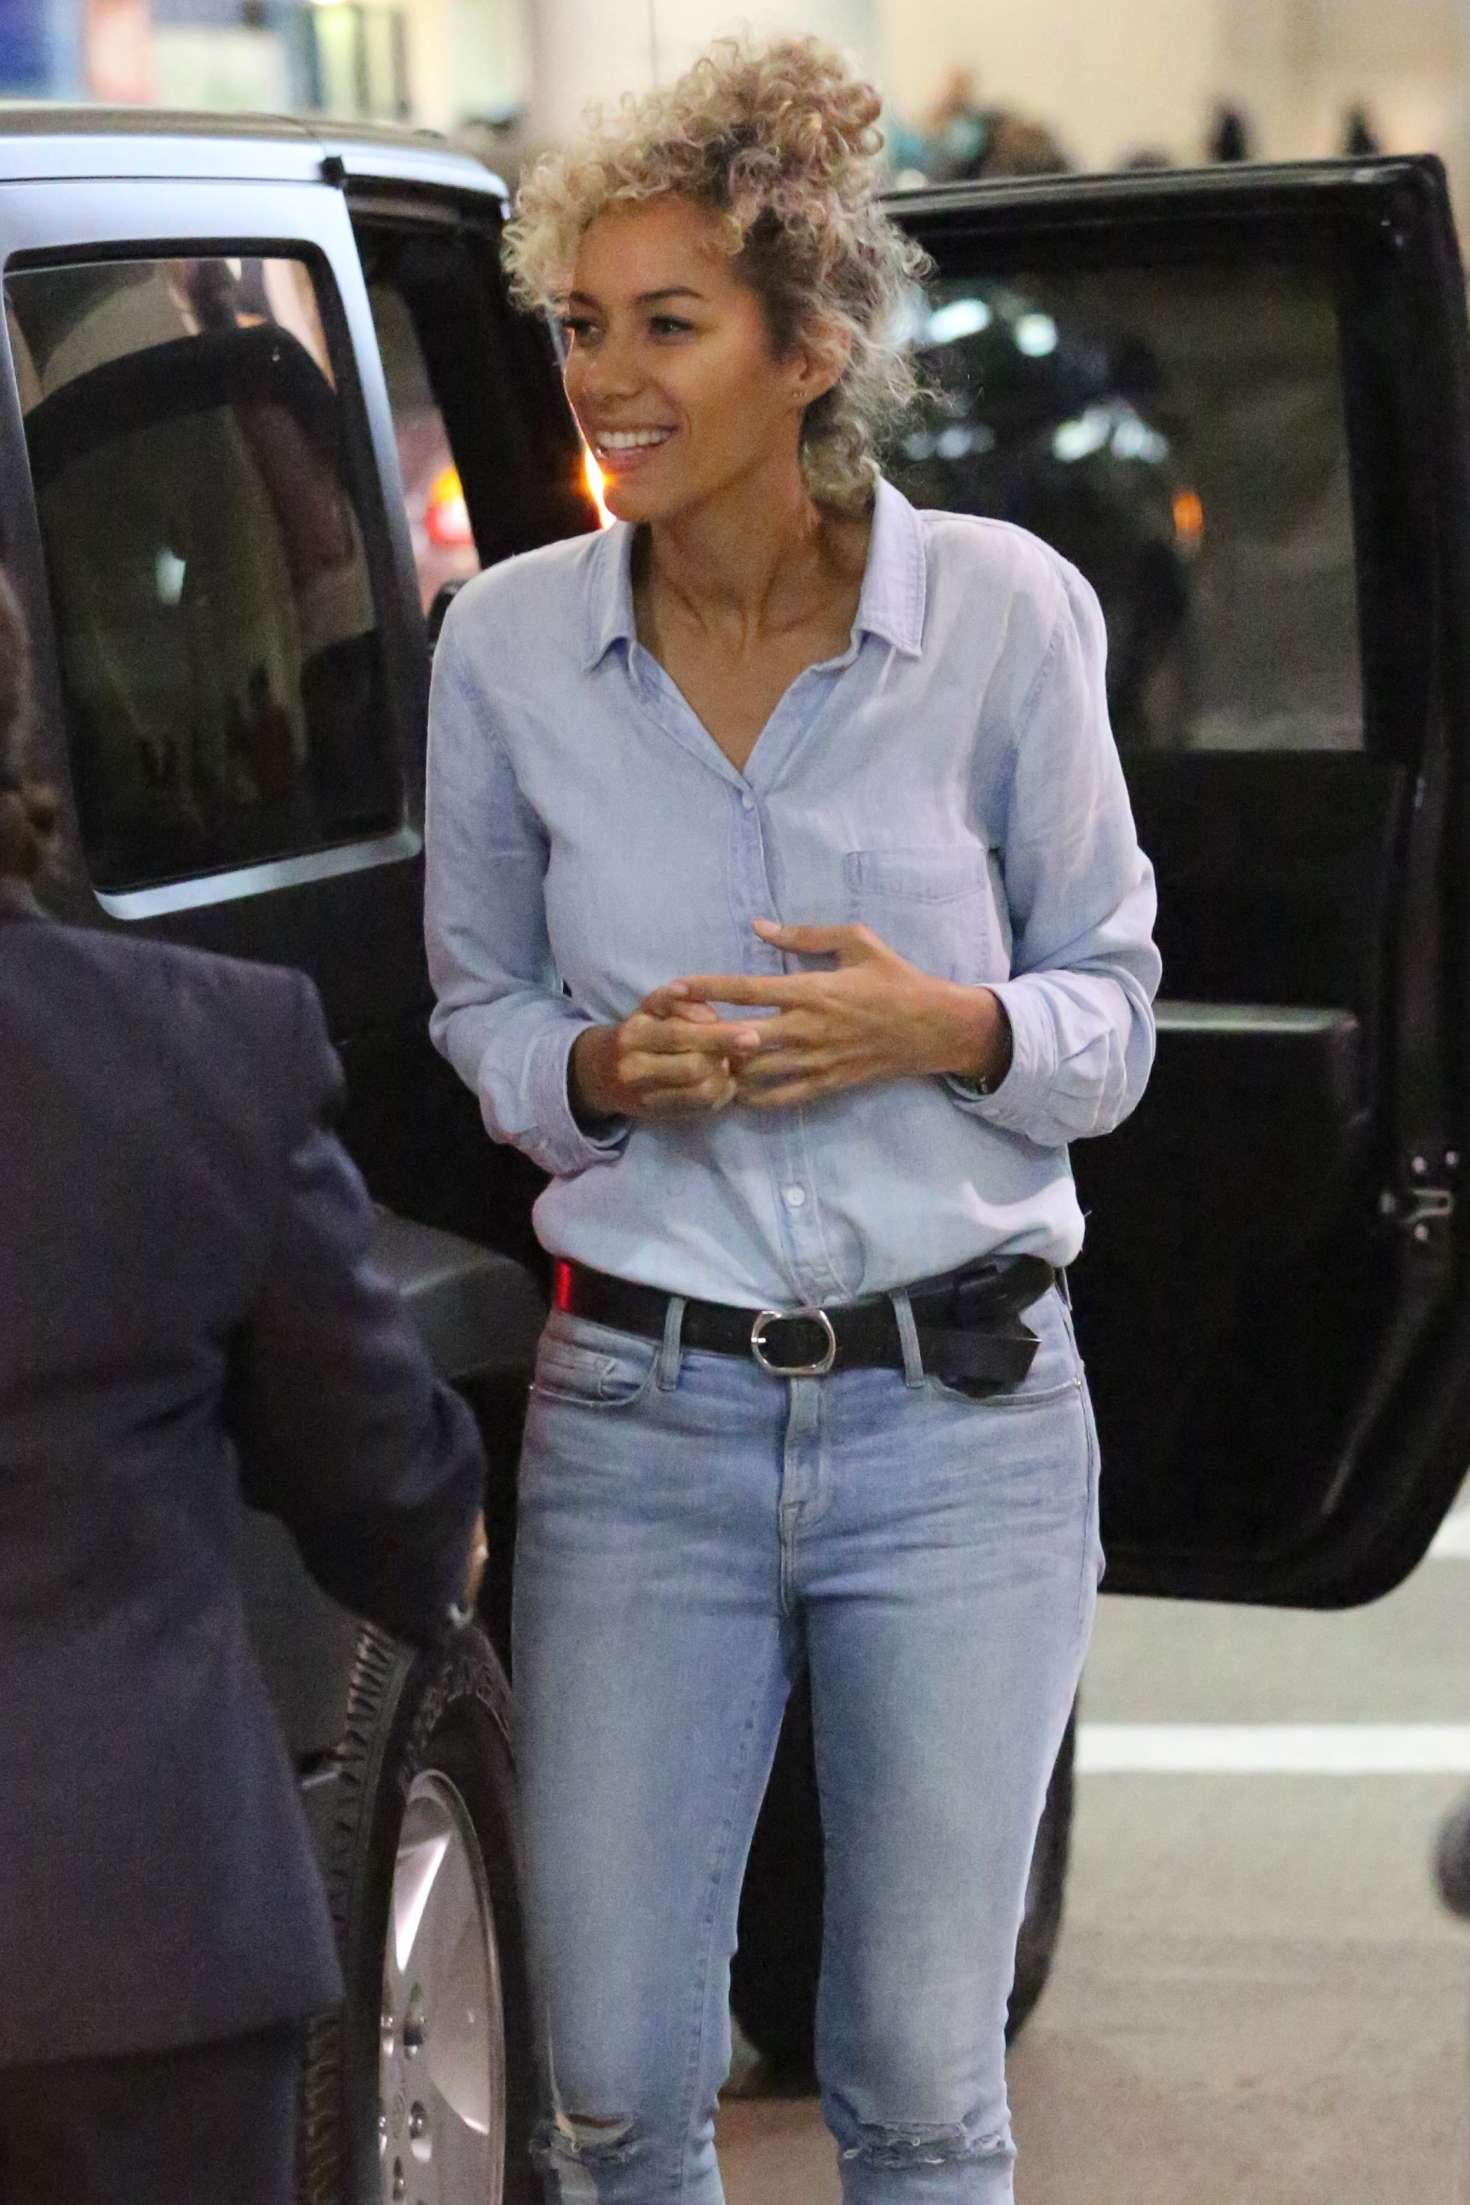 Leona Lewis Arrives at LAX Airport in Los Angeles